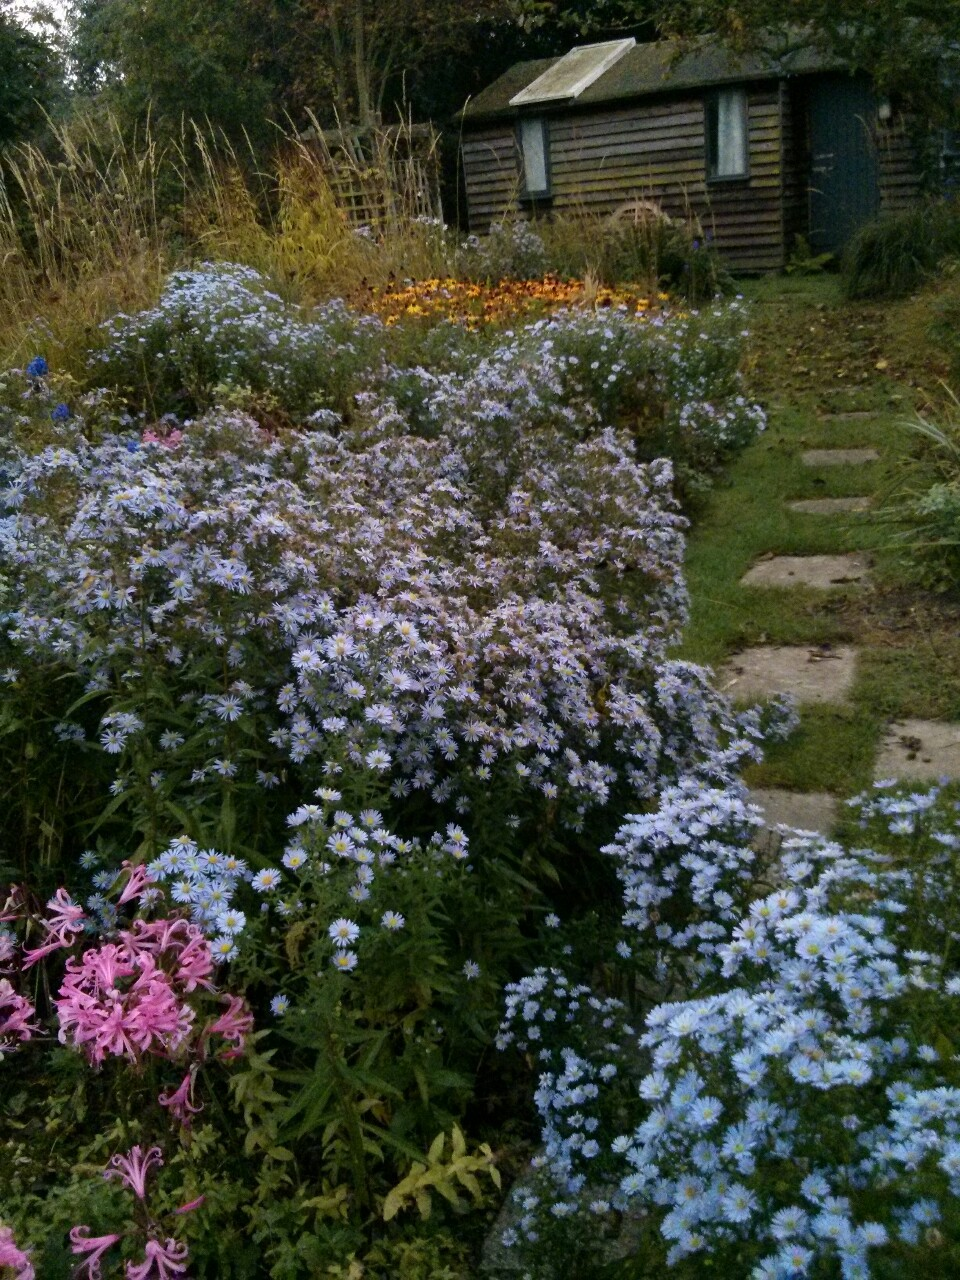 A few days away and the garden seems to have filled with Michaelmas daisies.